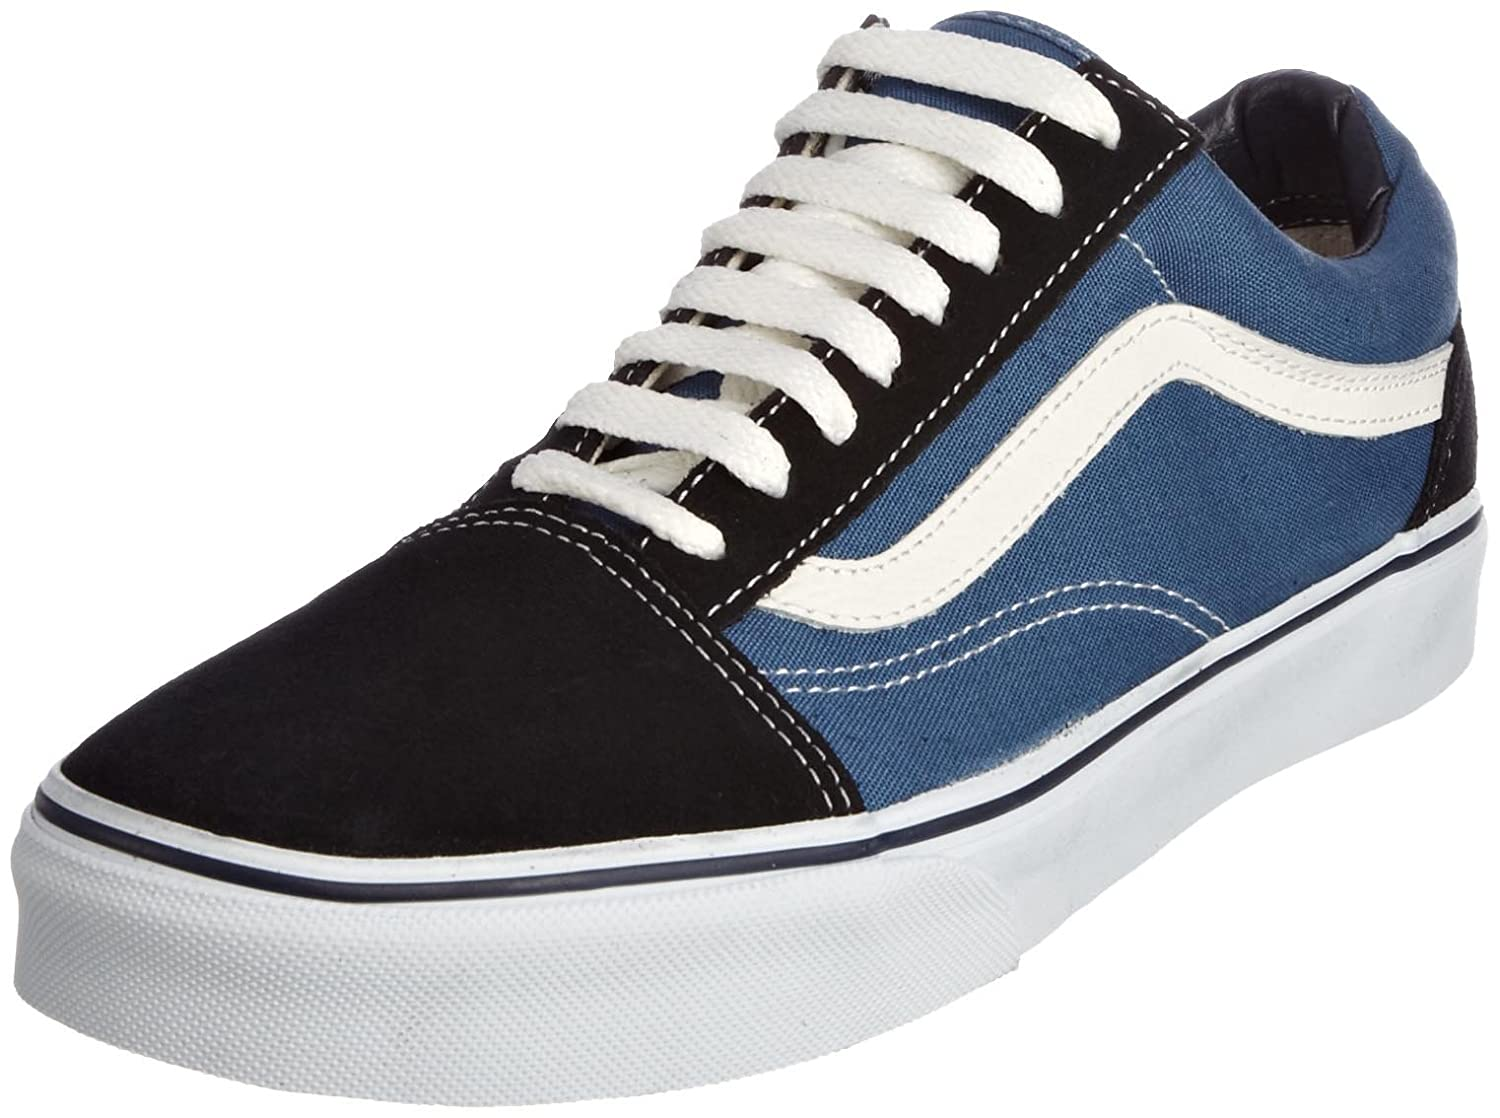 Vans Unisex Old Skool Classic Skate Shoes B000NP41Z2 10.5 D(M) Mens / 12 B(M) Womens|Navy/White